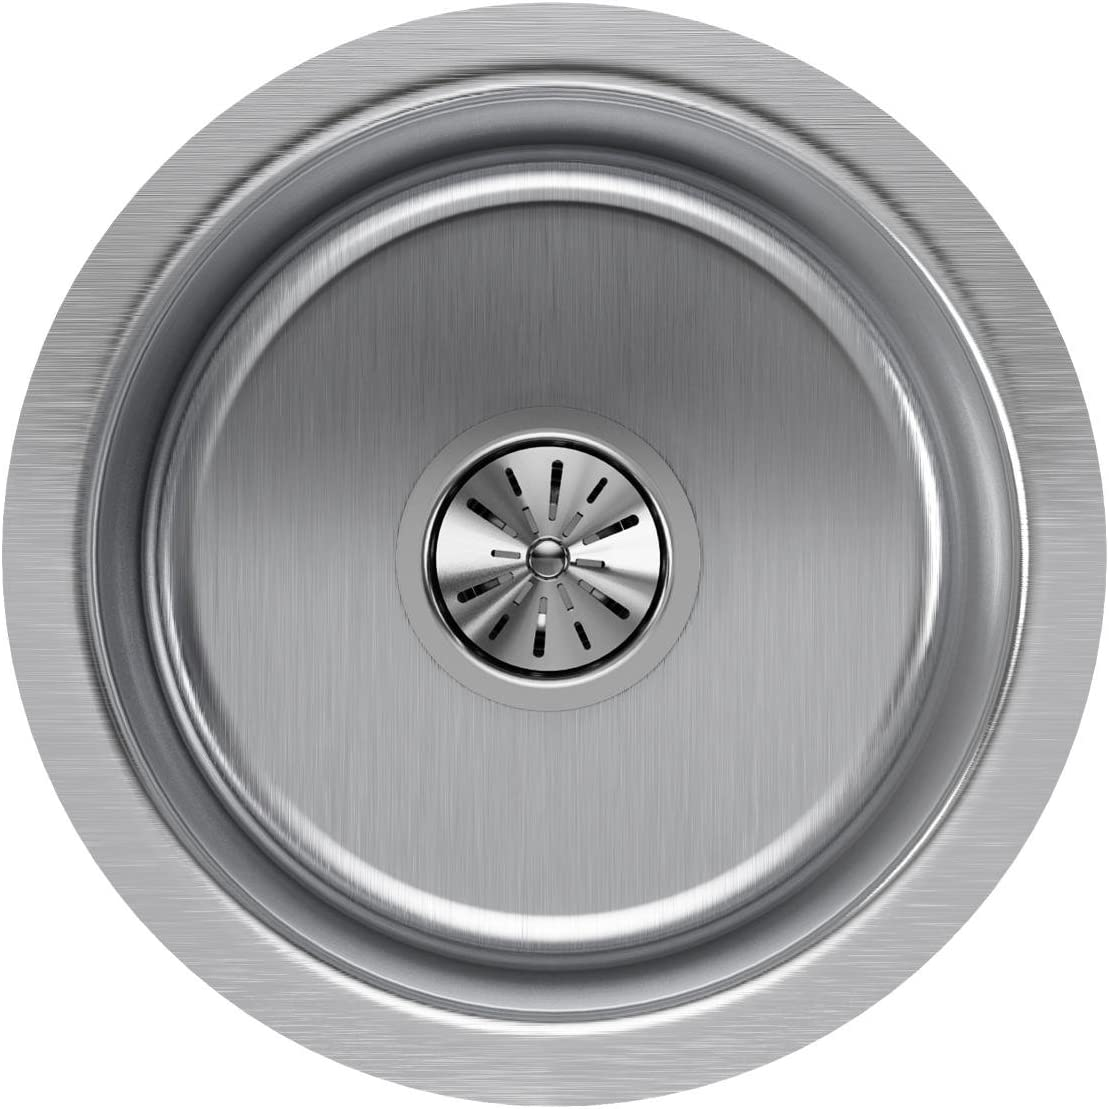 Elkay ELUH12FB Lustertone Classic Single Bowl Undermount Stainless Steel Sink